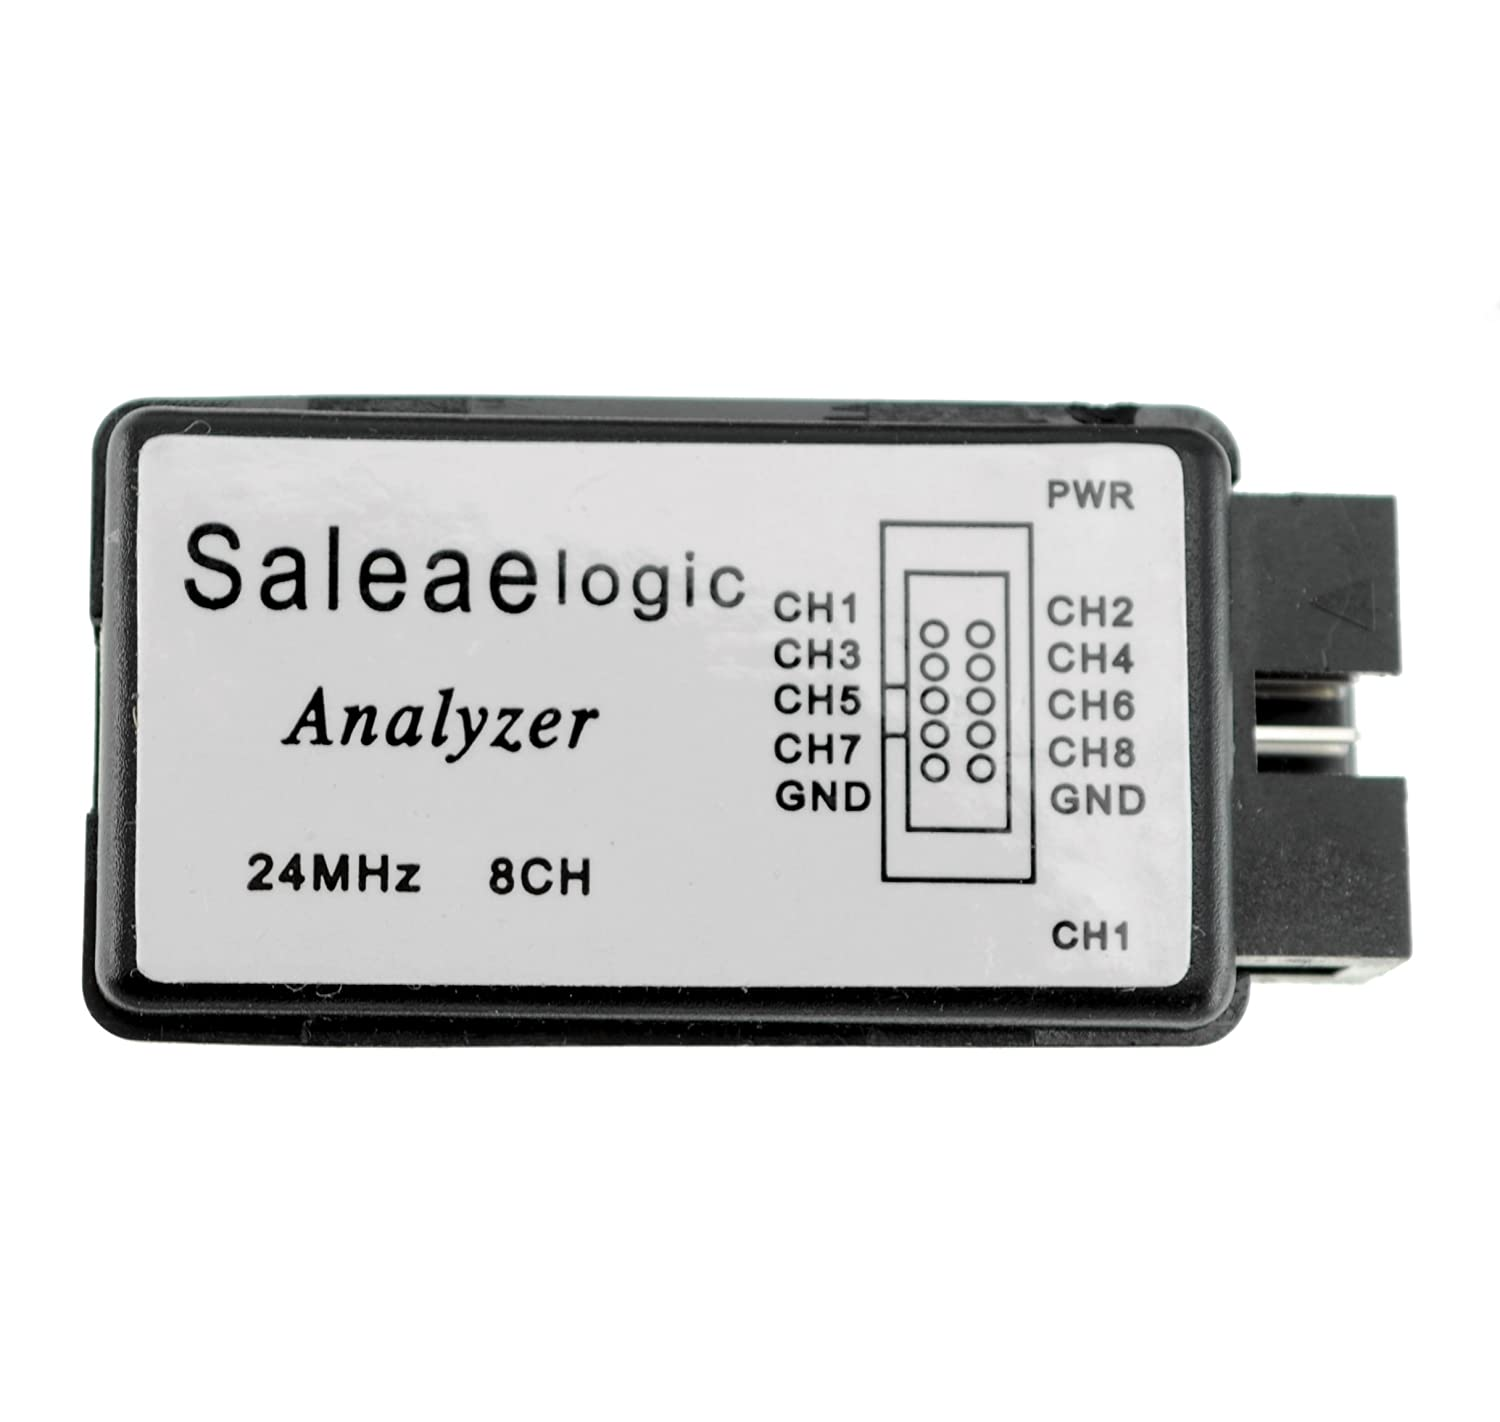 satkit Logico Analyzer 24/ MHz 8/ CH Compatible With The Software USB Saleae Logic